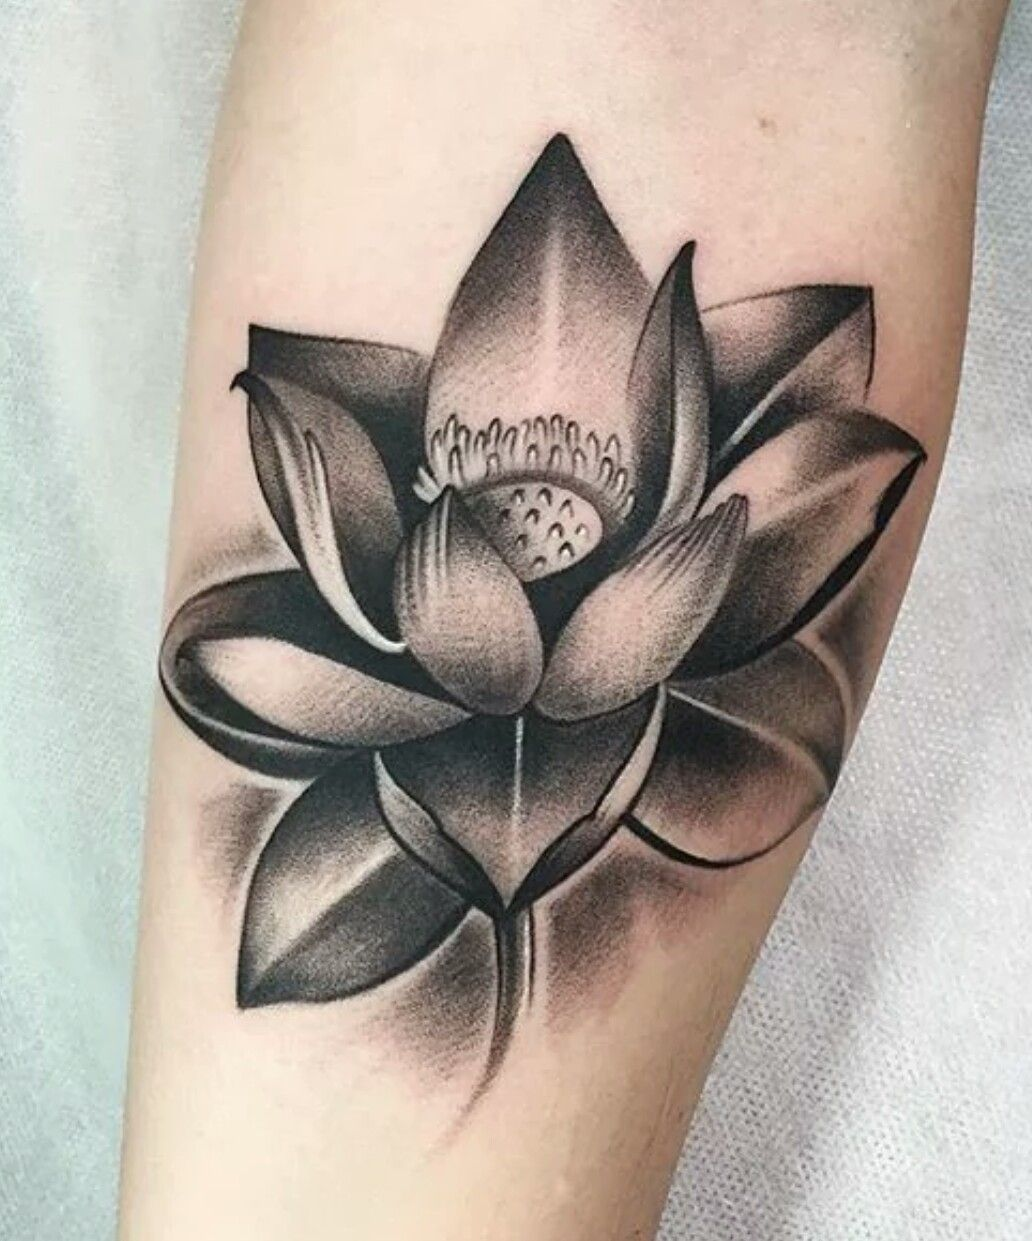 Pin by marci huff on tattoos tatts living with in art lotus flower tattoo design black lotus tattoo lotus tattoo men lotus flower tattoos izmirmasajfo